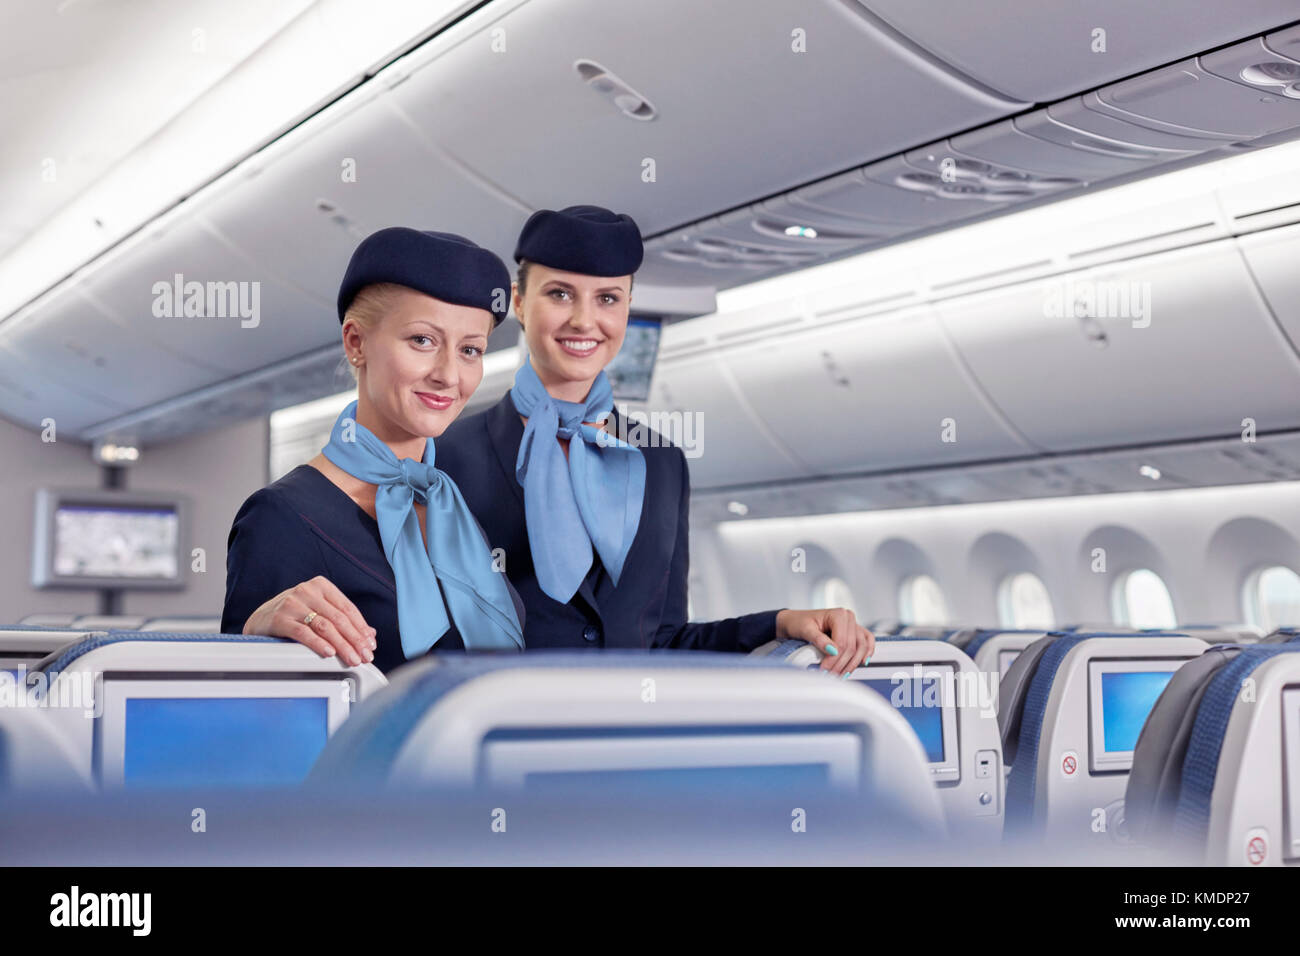 Portrait smiling,confident female flight attendants on airplane - Stock Image